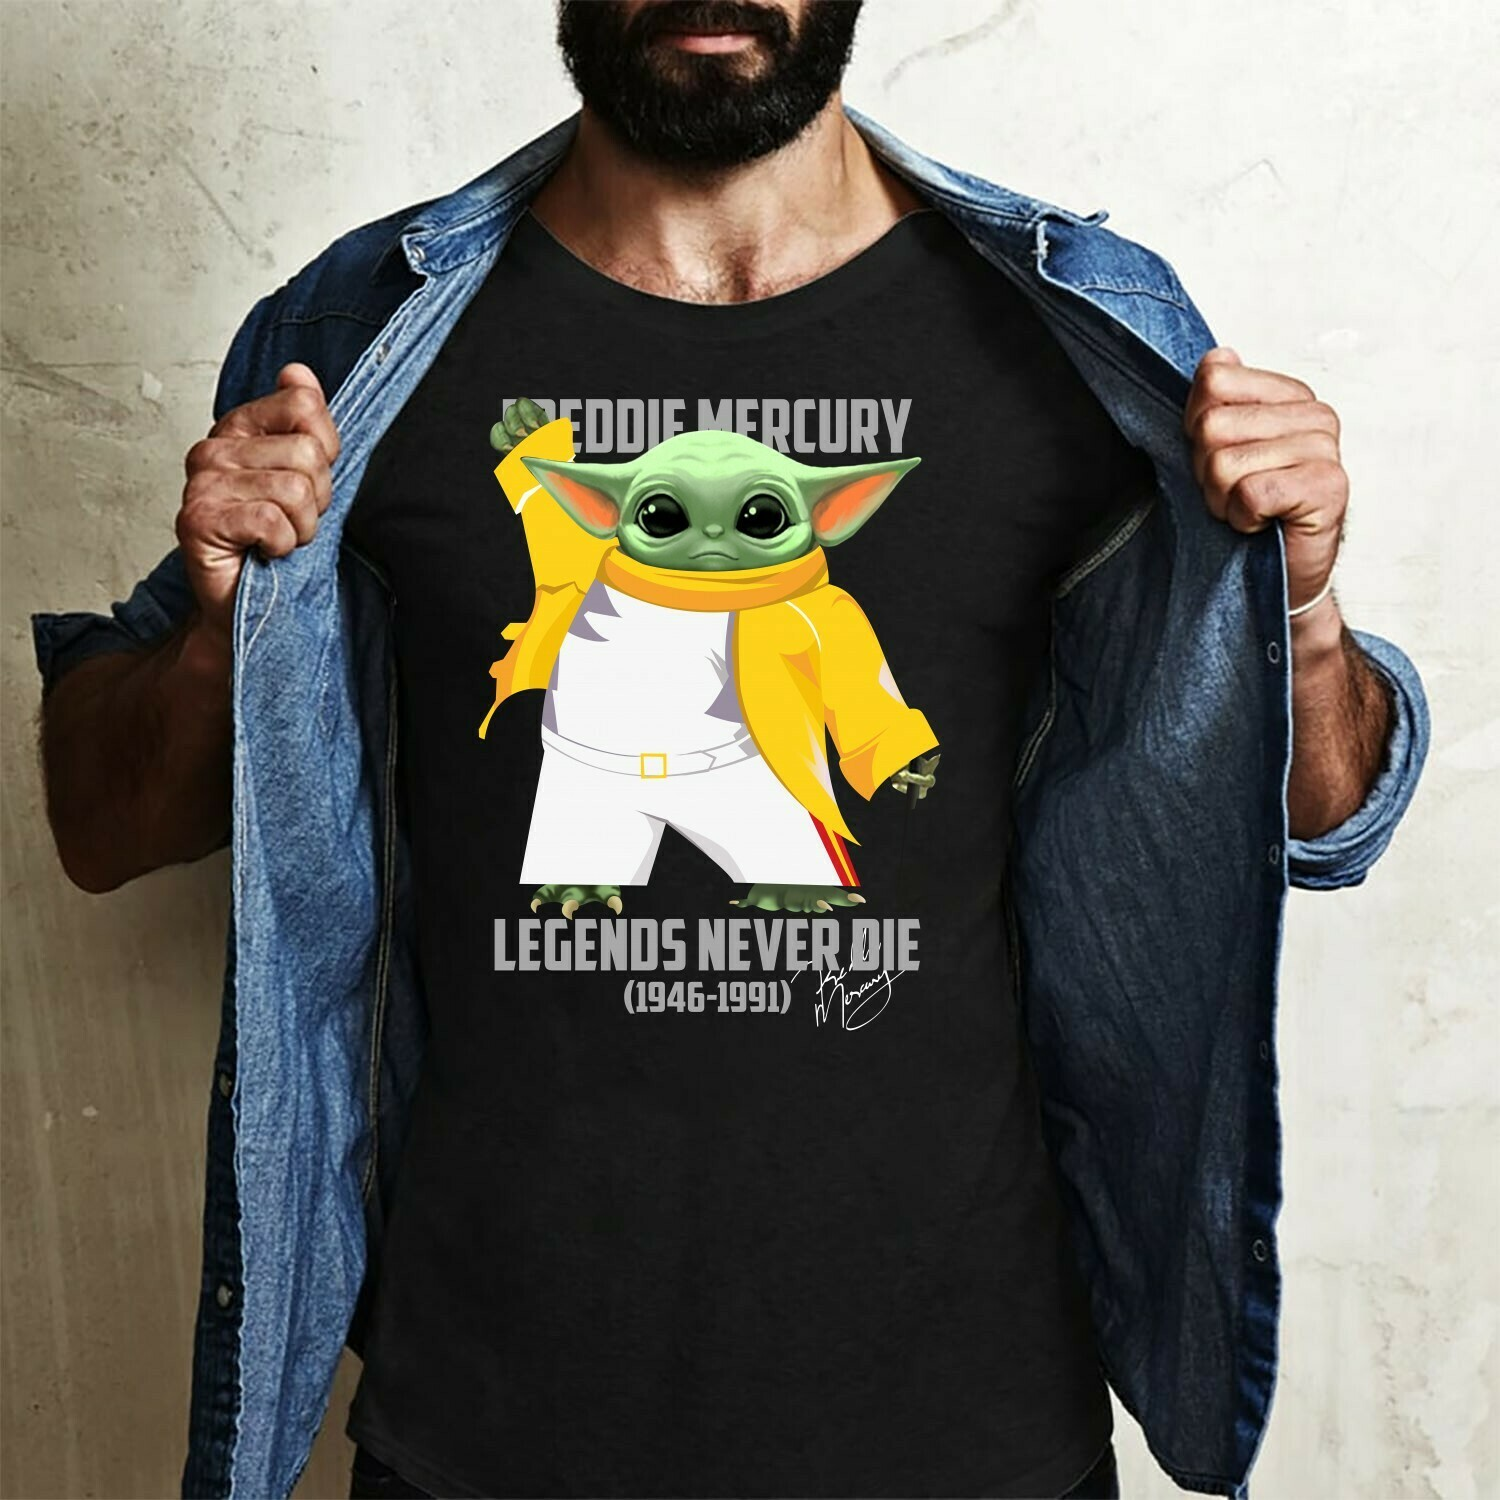 Baby Yoda Freddie Mercury Legends Never Die 1946-1991 signature,The Rock Band Queen gift,AIDS Kills The King of Rock Fan T-Shirt Long Sleeve Sweatshirt Hoodie Jolly Family Gifts